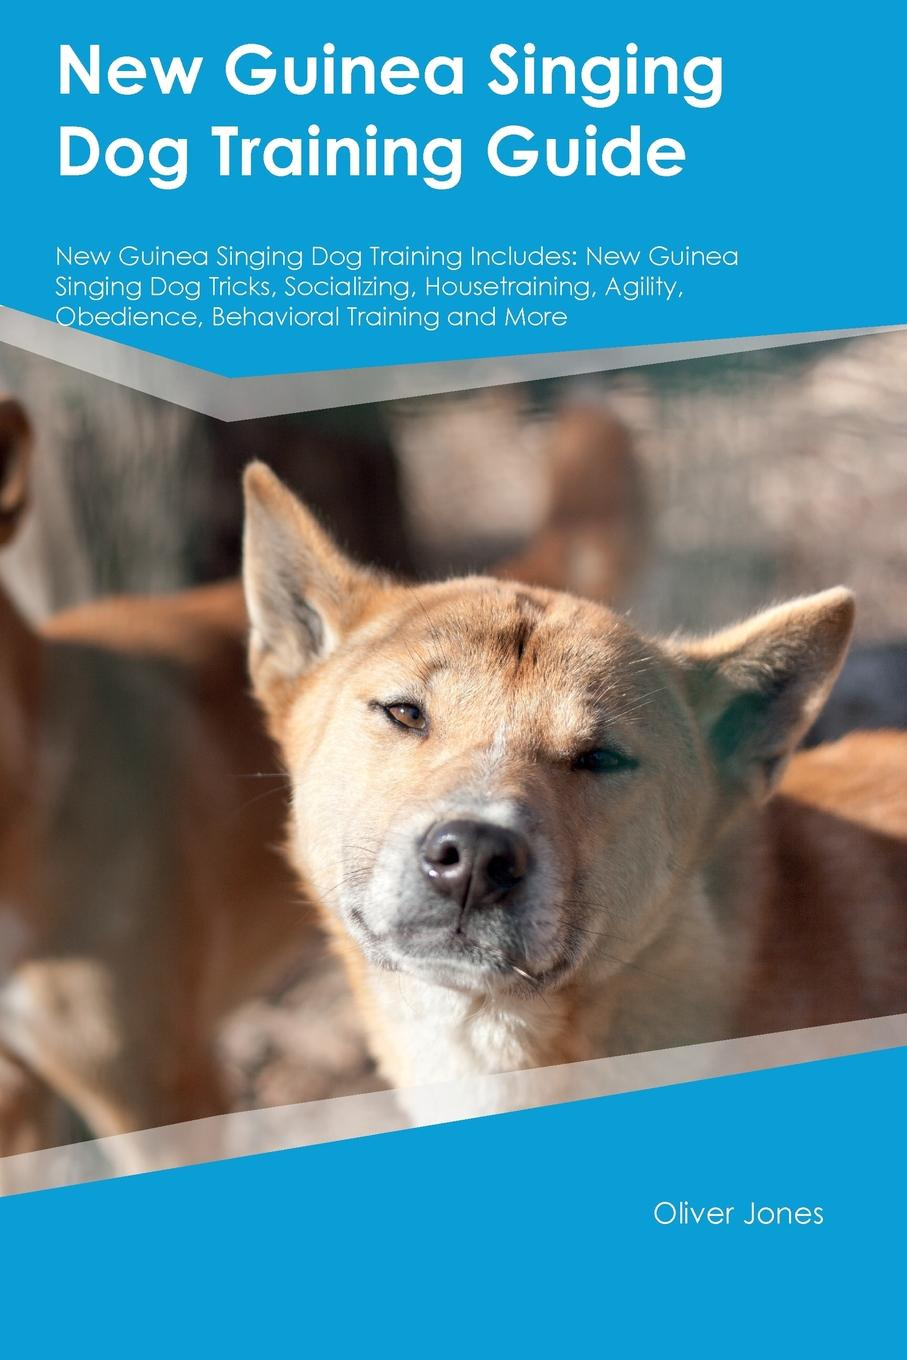 Oliver Jones New Guinea Singing Dog Training Guide New Guinea Singing Dog Training Includes. New Guinea Singing Dog Tricks, Socializing, Housetraining, Agility, Obedience, Behavioral Training and More a guinea pig romeo